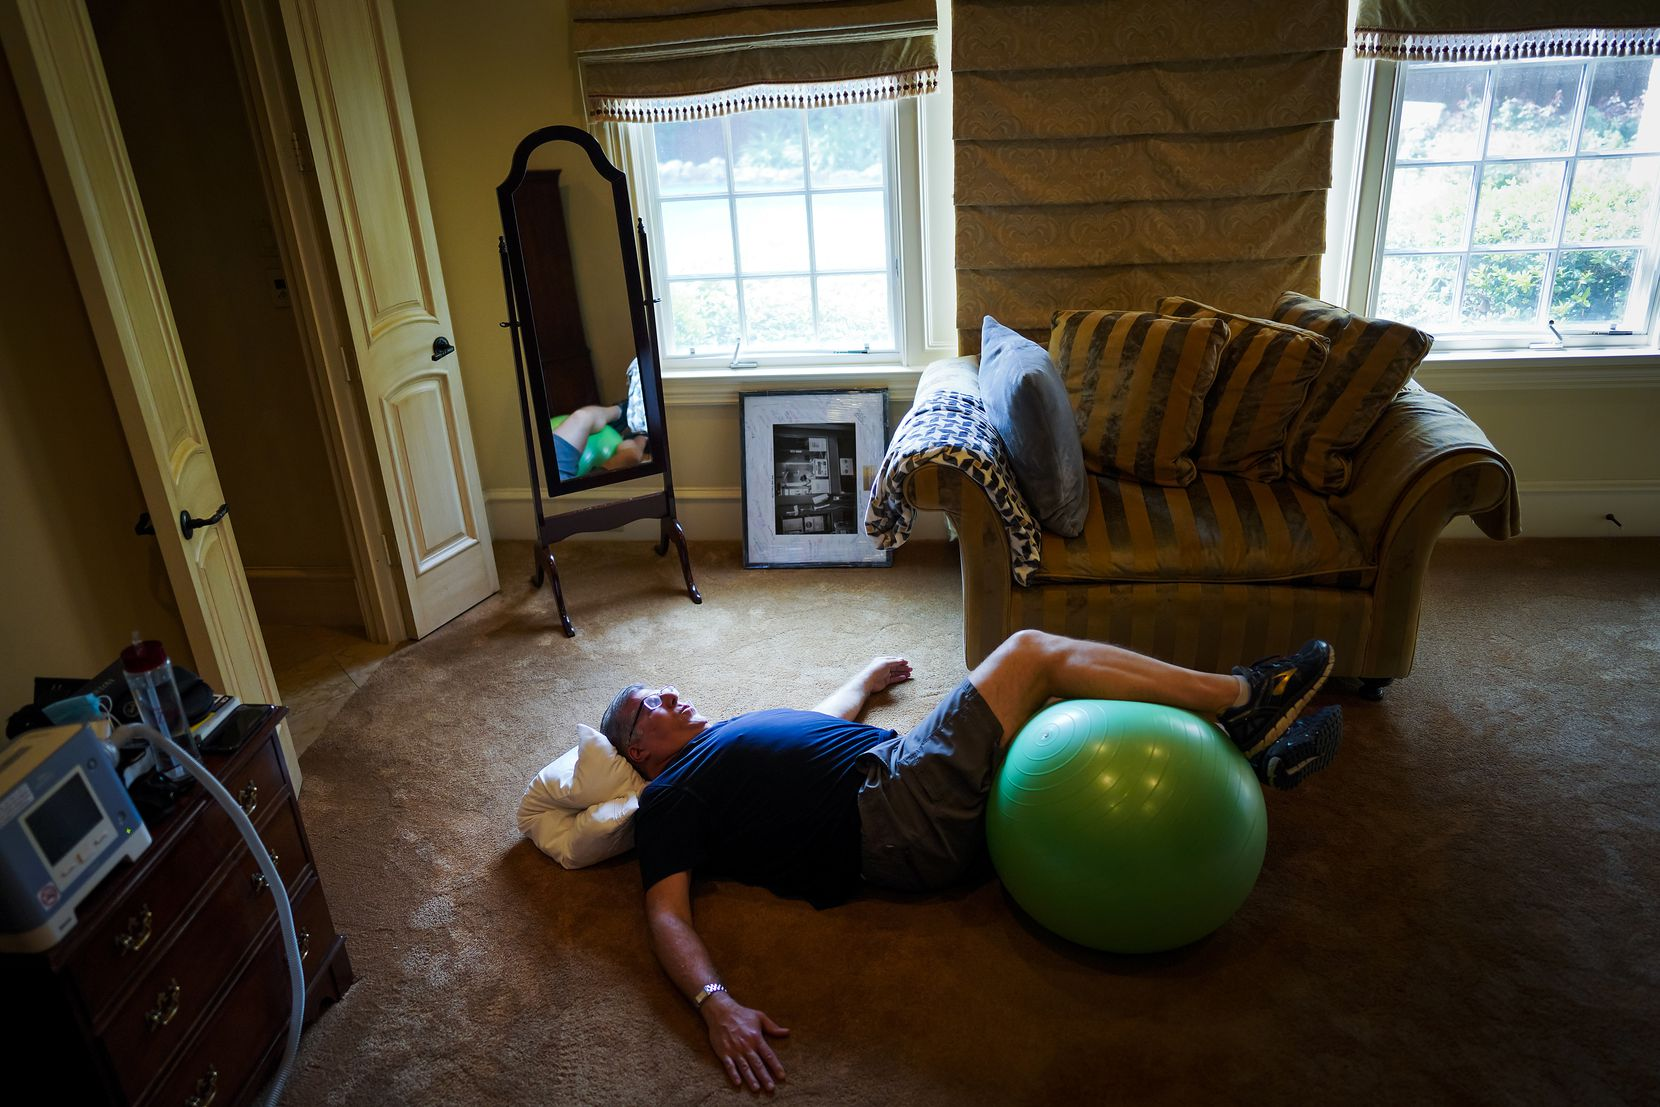 Michael Hoffman works out at home on the days when he doesn't have outpatient rehab at UT Southwestern Medical Center.